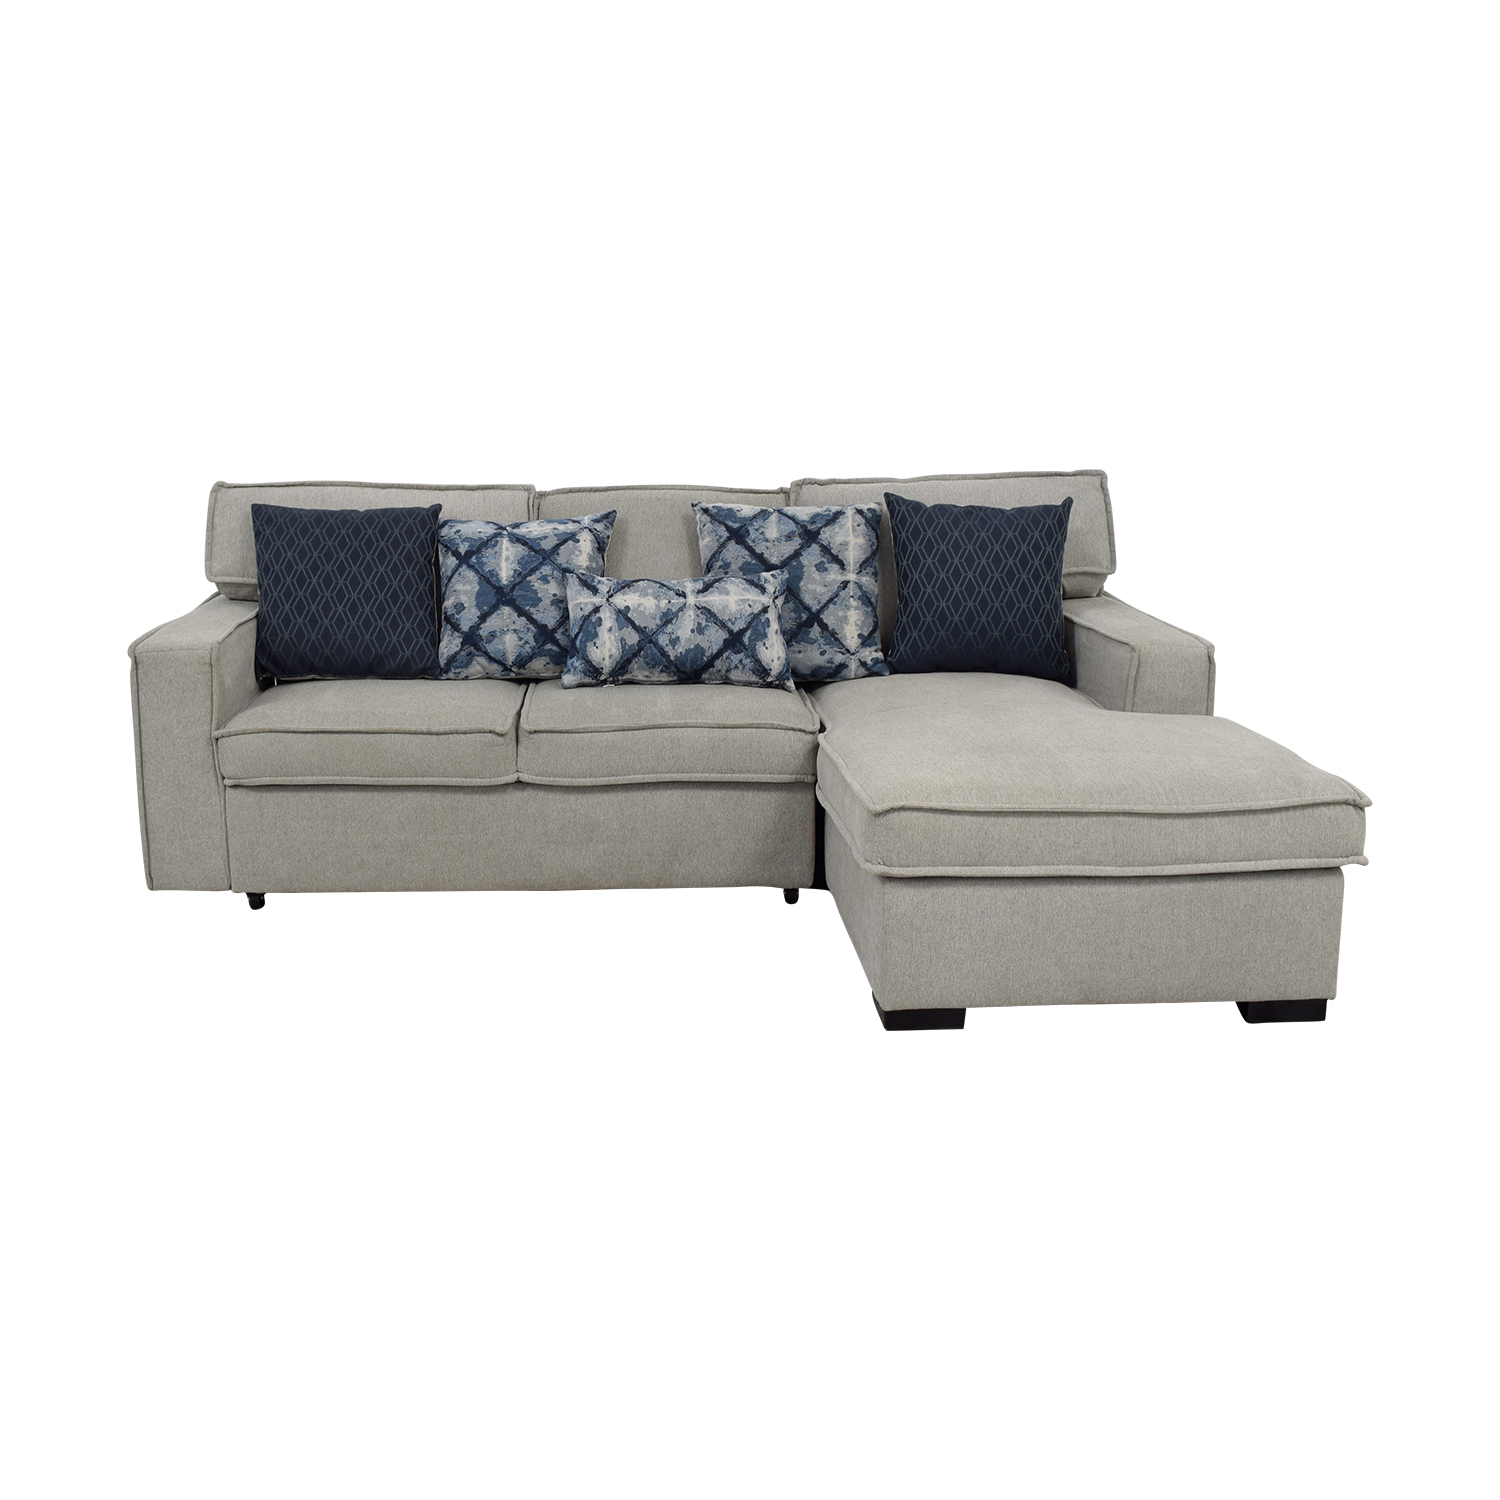 Bob's Furniture Bob's Furniture Gray Chaise Storage Sectional used